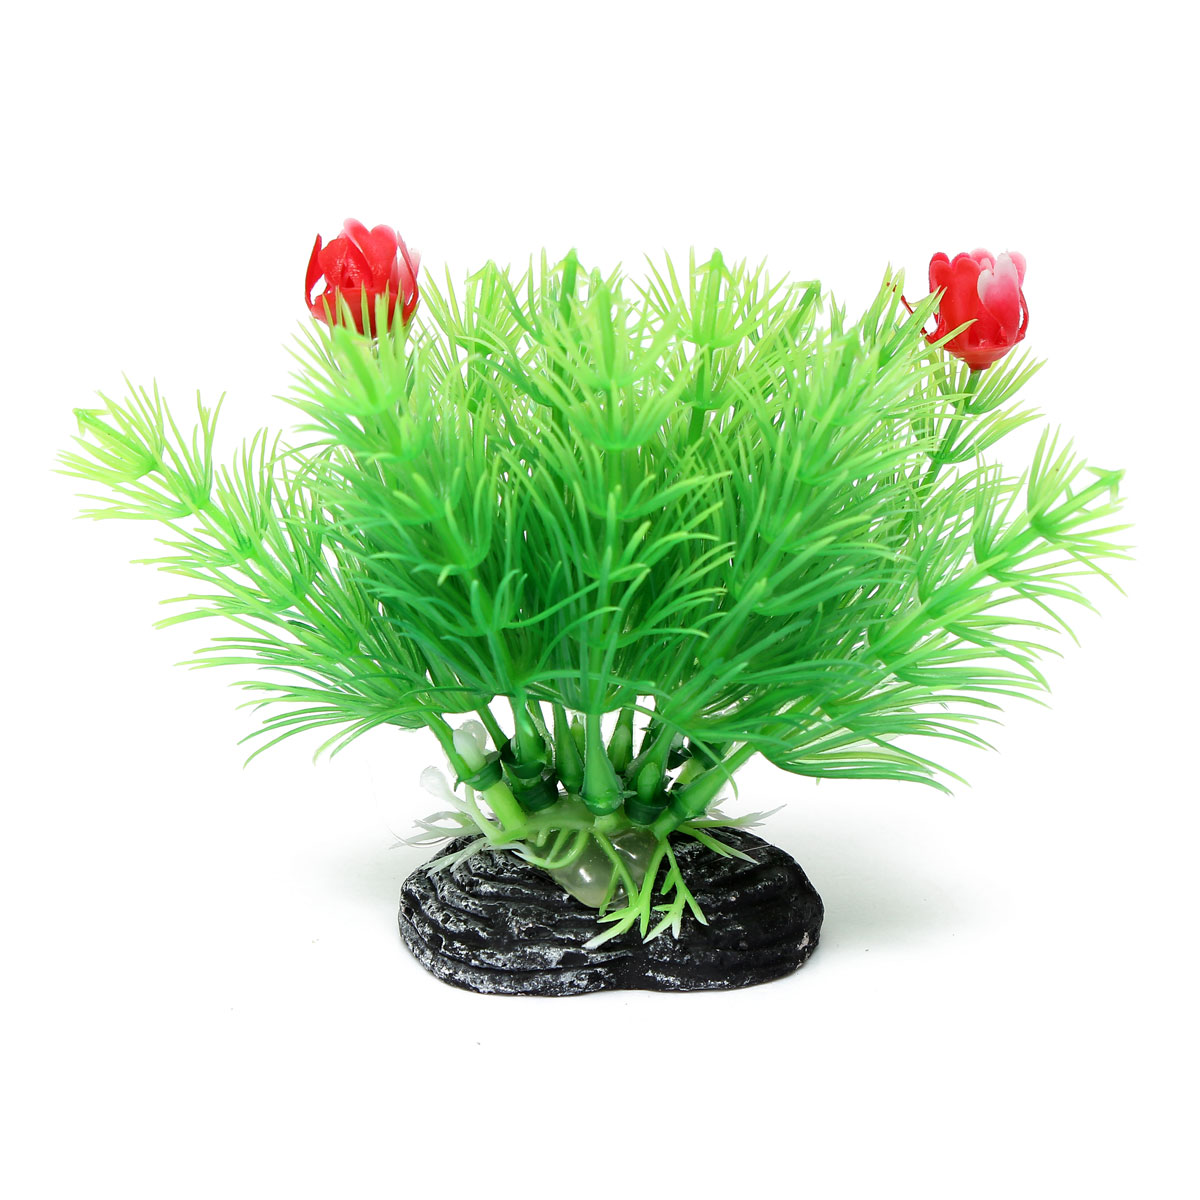 Aquarium fish tank artificial plant grass with two flowers aquarium aquarium fish tank artificial plant grass with two flowers aquarium decor workwithnaturefo